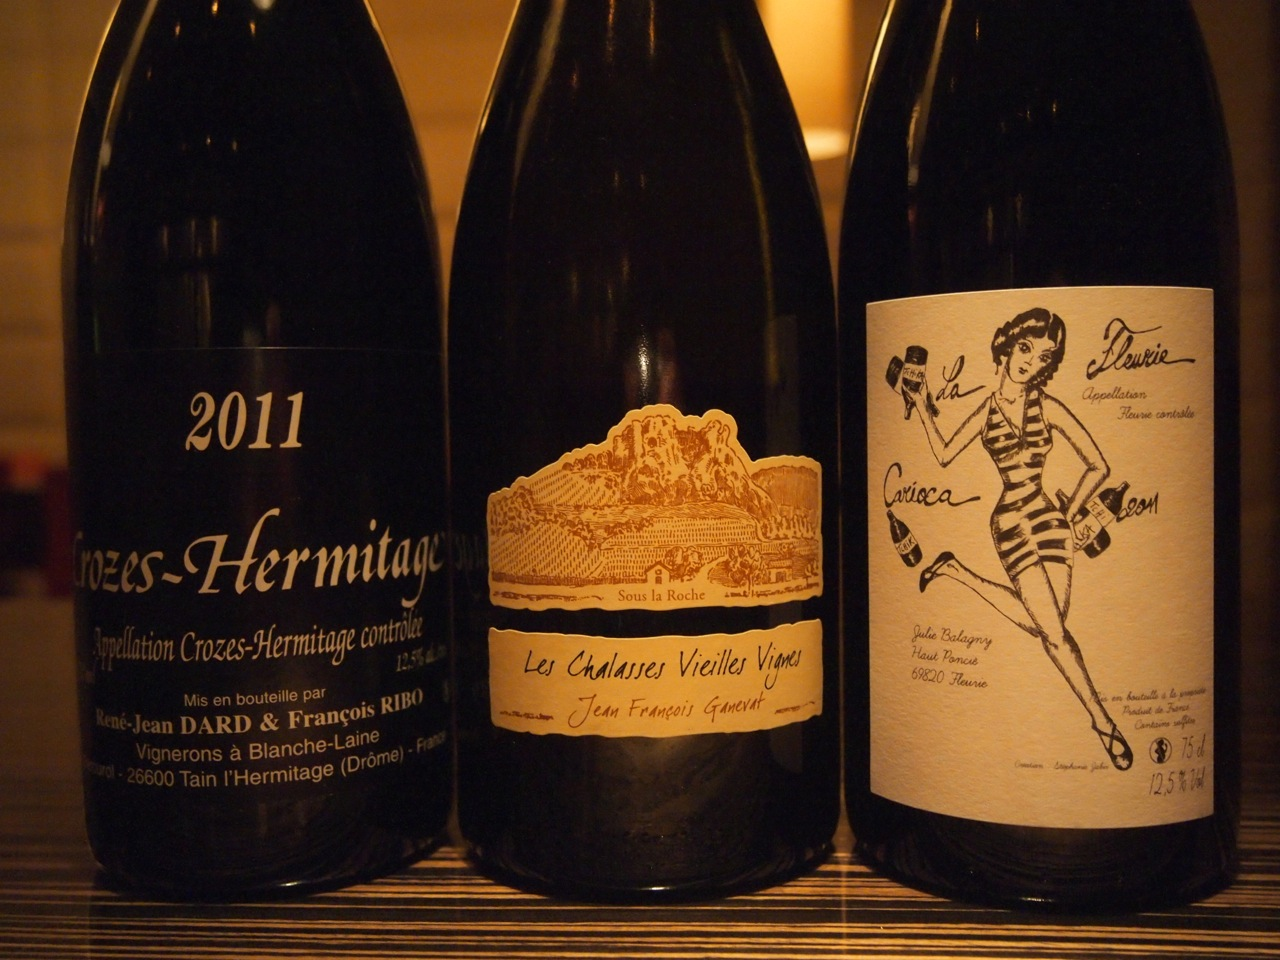 Some more or less natural wines that everyone could and should enjoy!